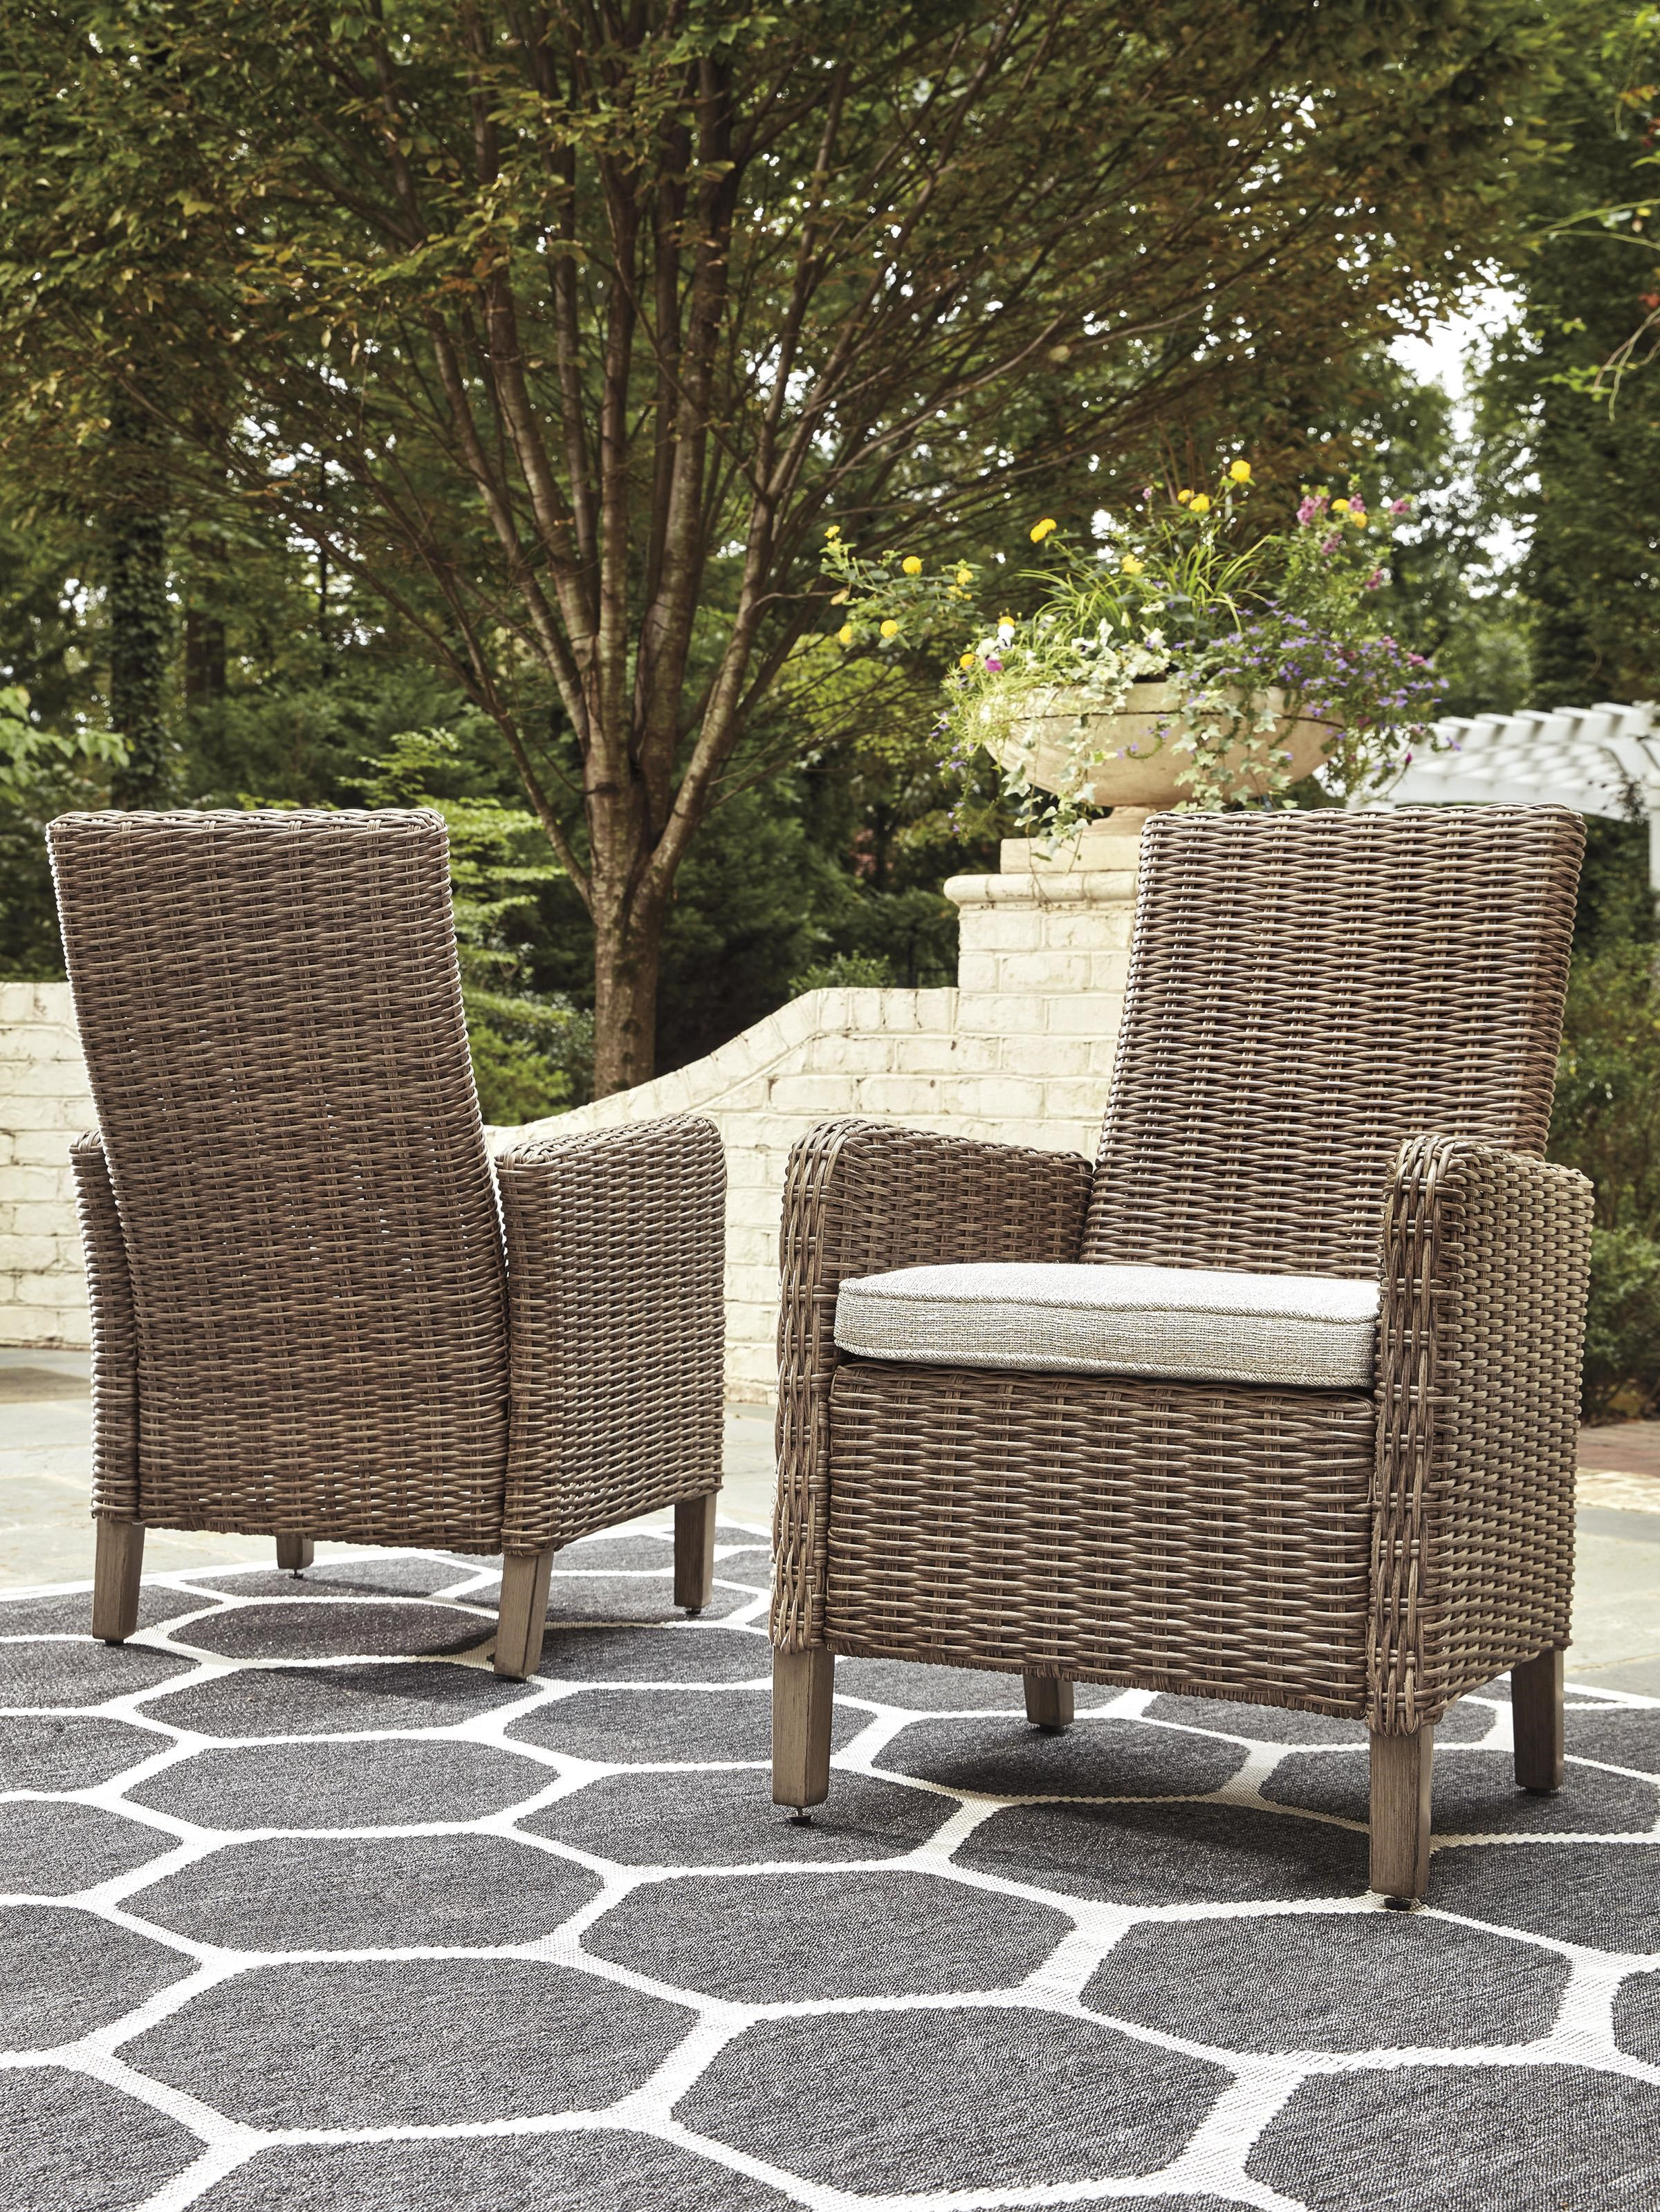 Set of 2 Arm Chairs with Cushion